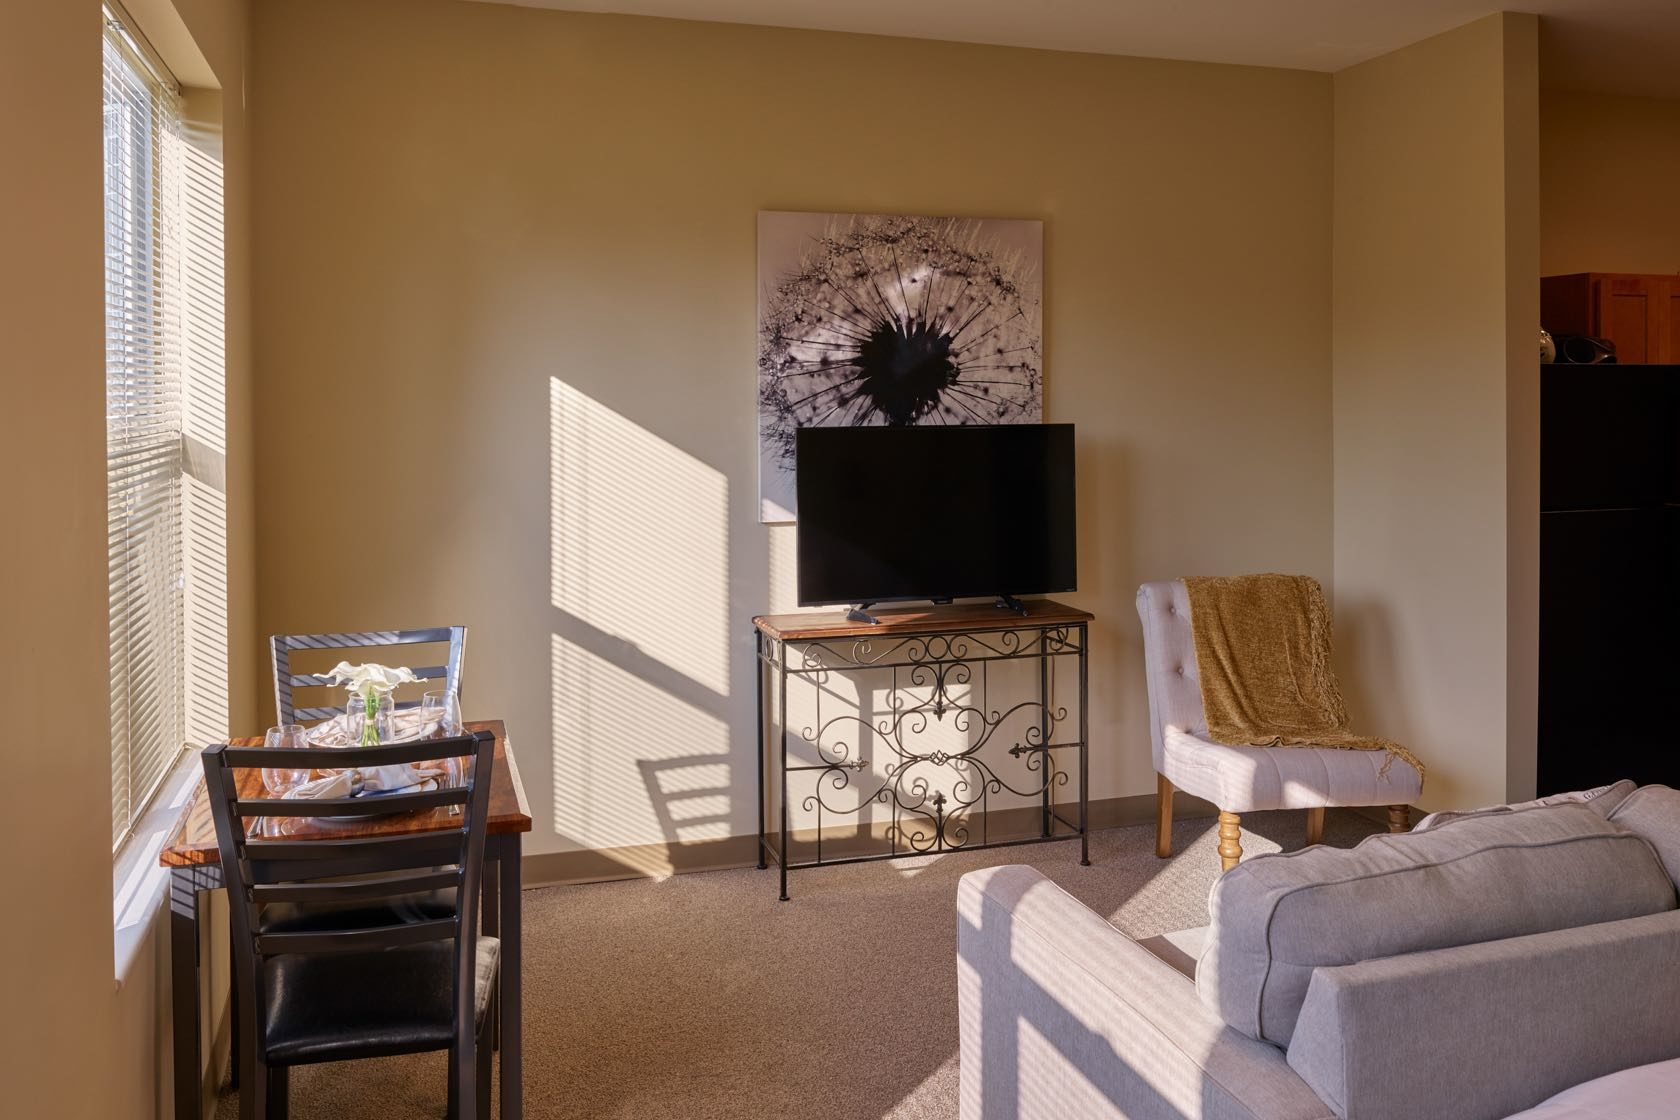 Affordable Assisted Living Community Silver Birch Of Hammond IN 46320